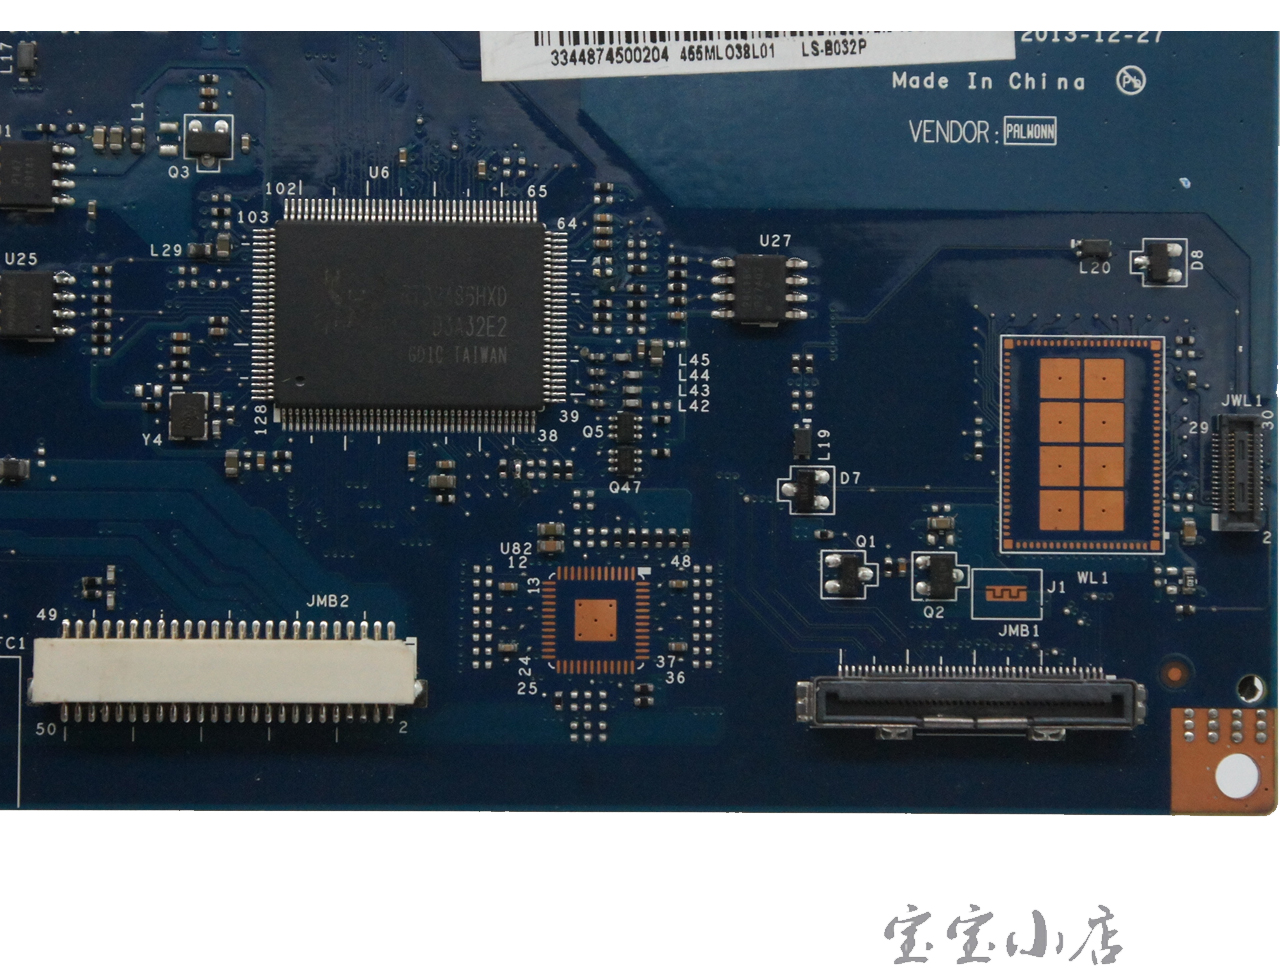 新到货190片 联想 Lenovo LS-B032P LCD Inverter and LVDS Board f/ A730 A740 AiO PC 一体机逆变器 高压板